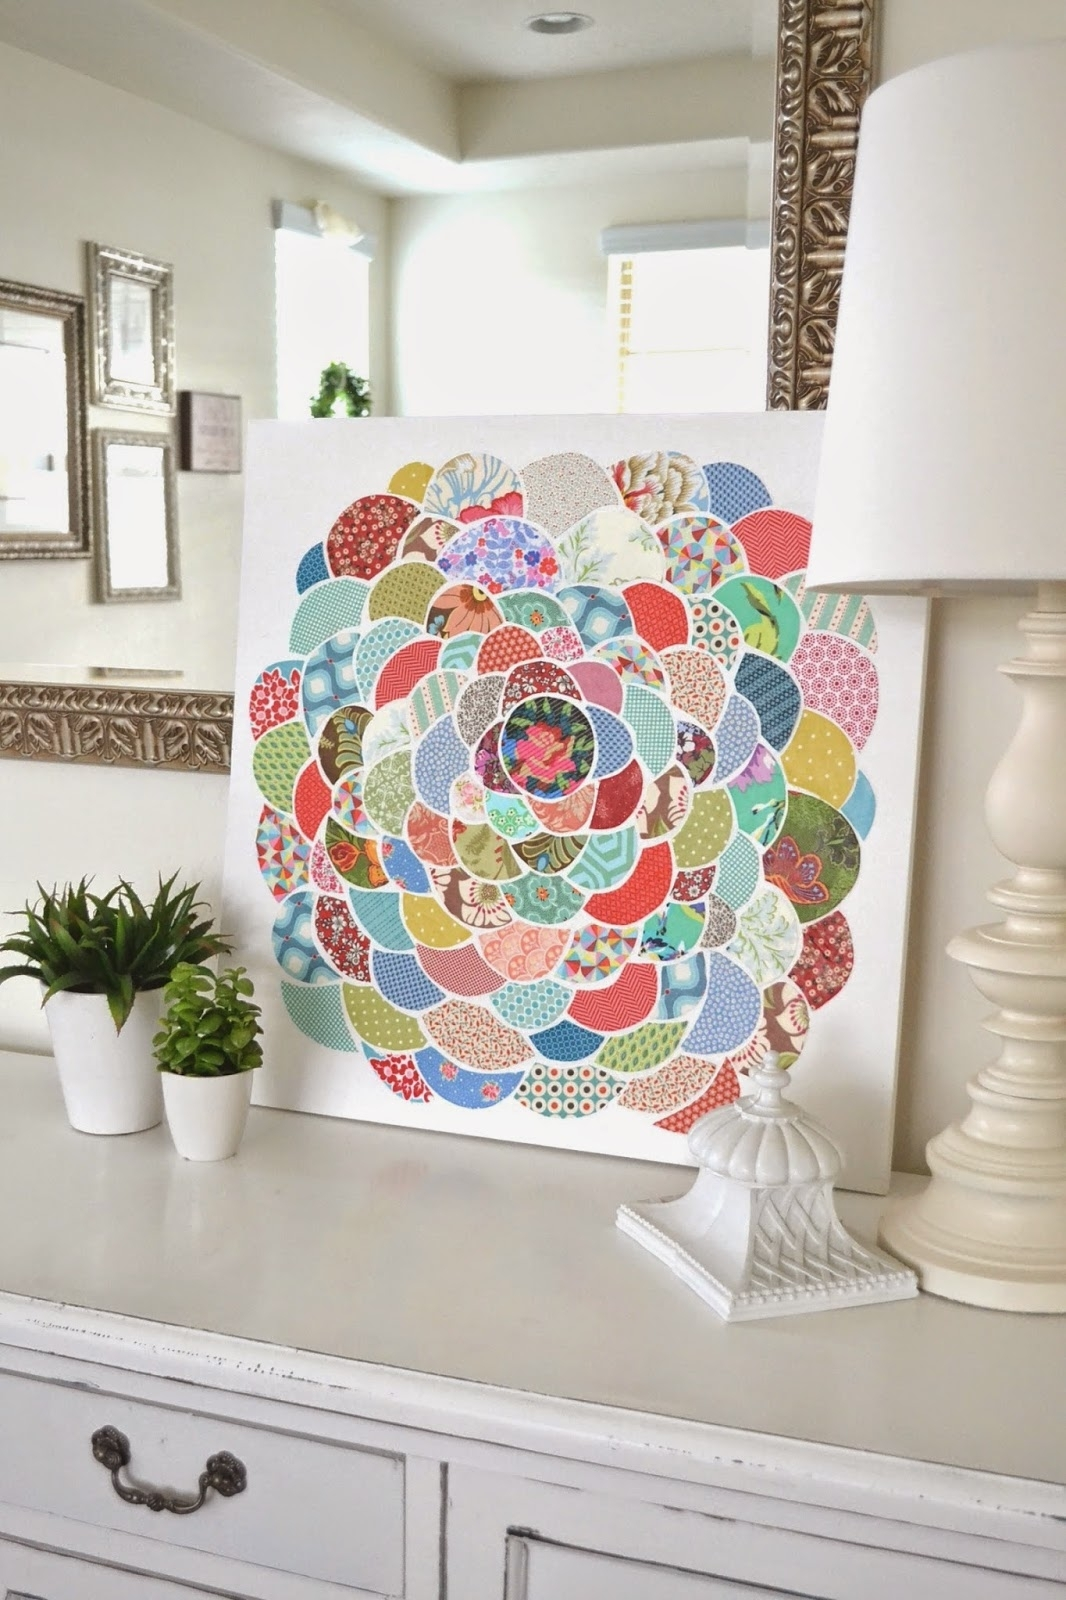 Tea Rose Home: Anthro Inspired ~ Canvas Flower Wall Art Regarding 2018 Fabric Circle Wall Art (View 12 of 15)